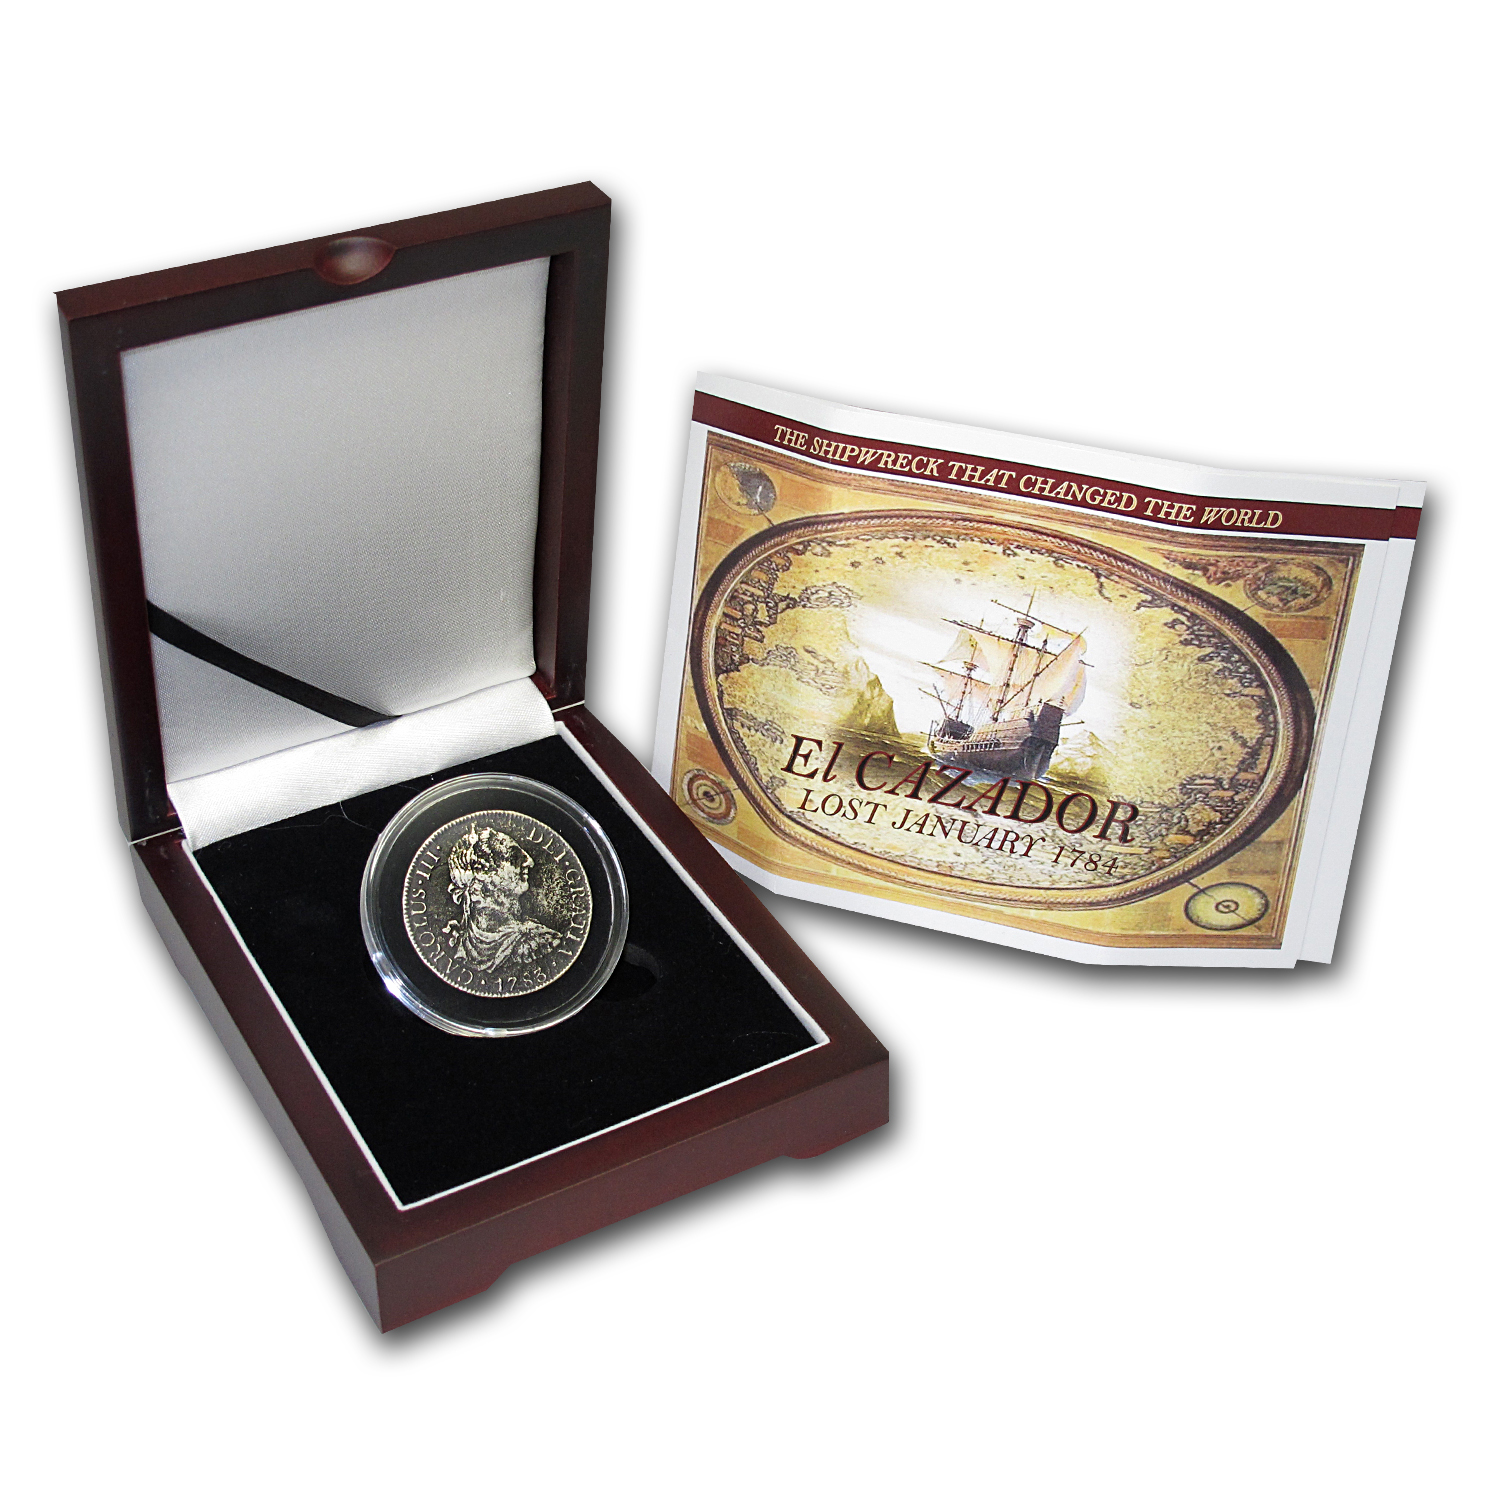 El Cazador Shipwreck Silver 8 Reales Collection